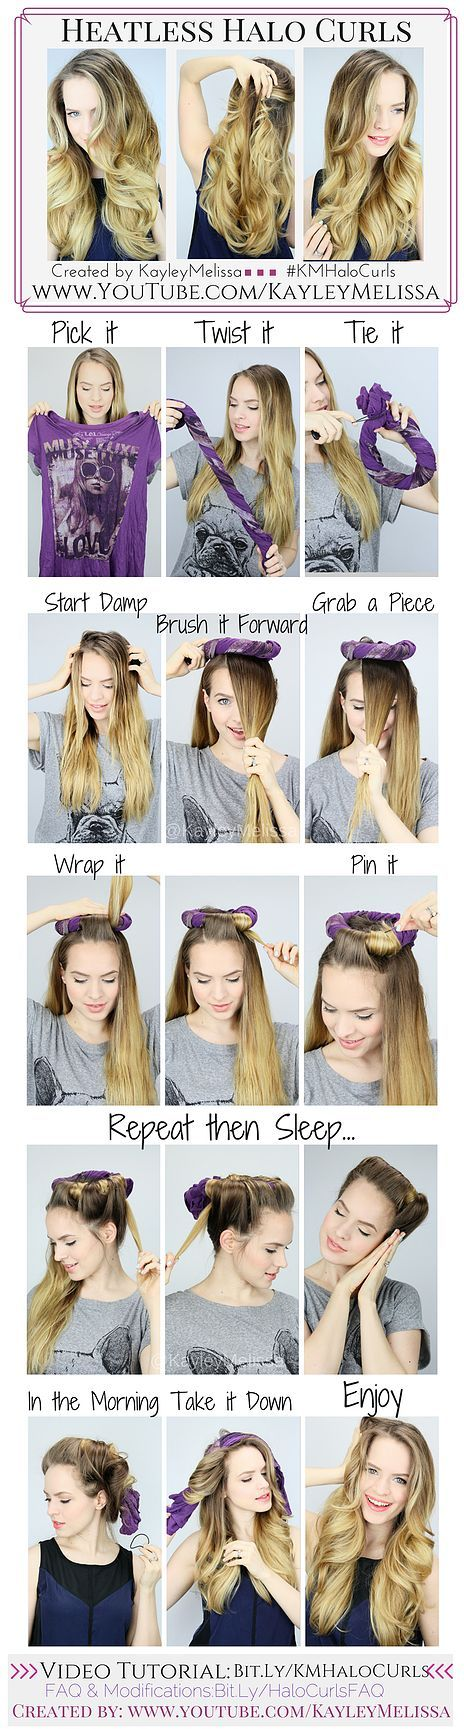 video tutorial: http://myawsomeoutfits.blogspot.com/2015/07/heateless-halo-curls-how-to-diy.html